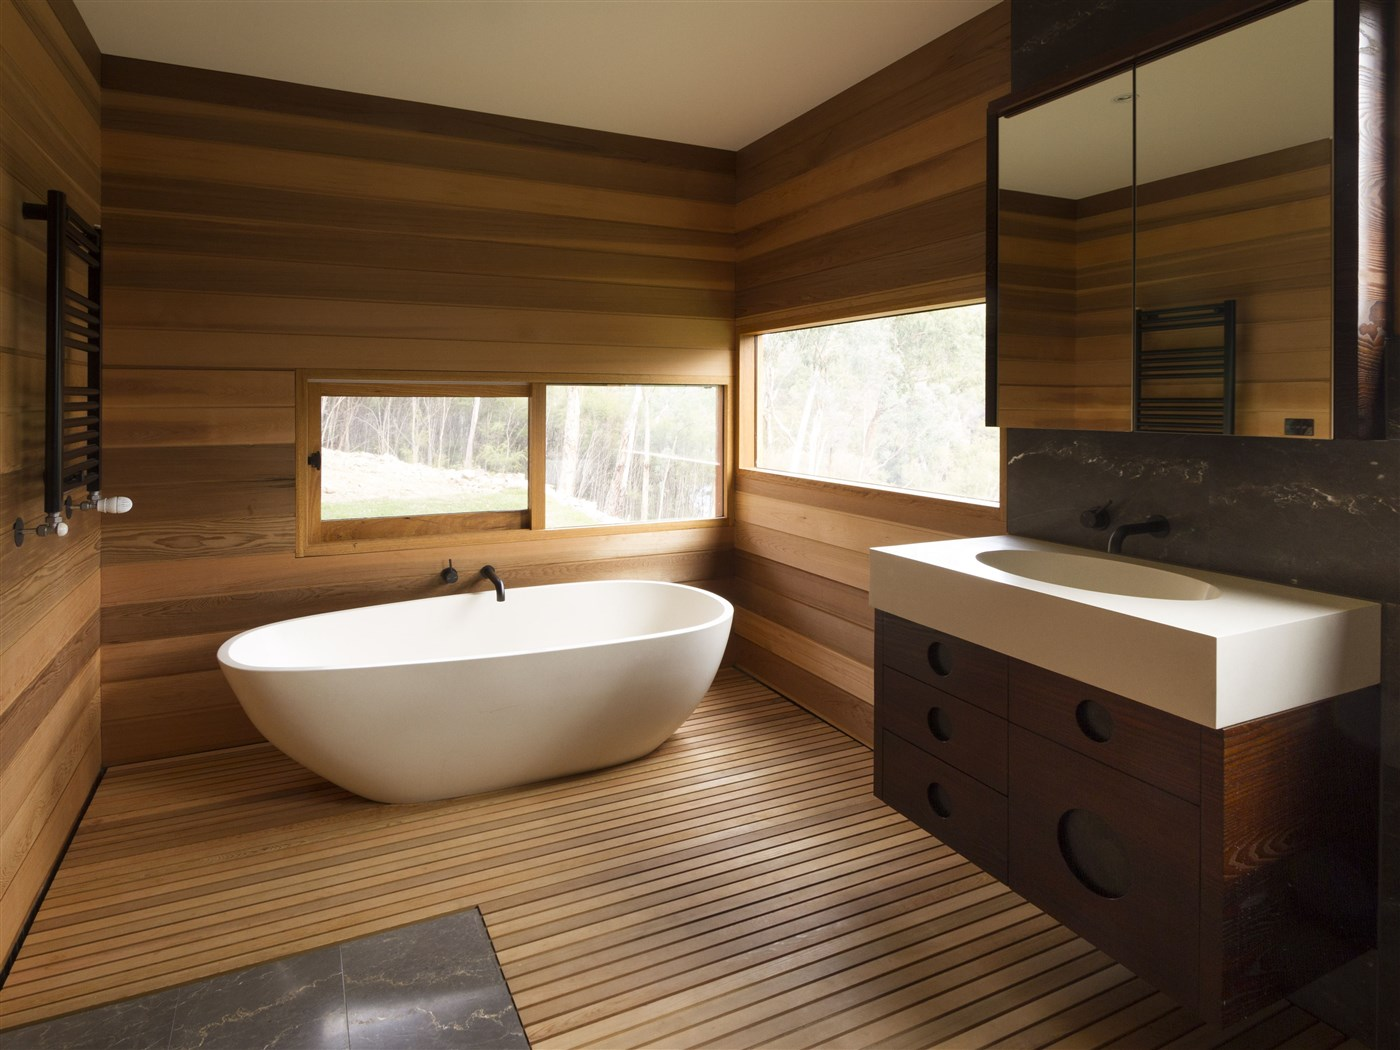 Holz Bad Wooden Bathroom Ideas #1 | Woodz